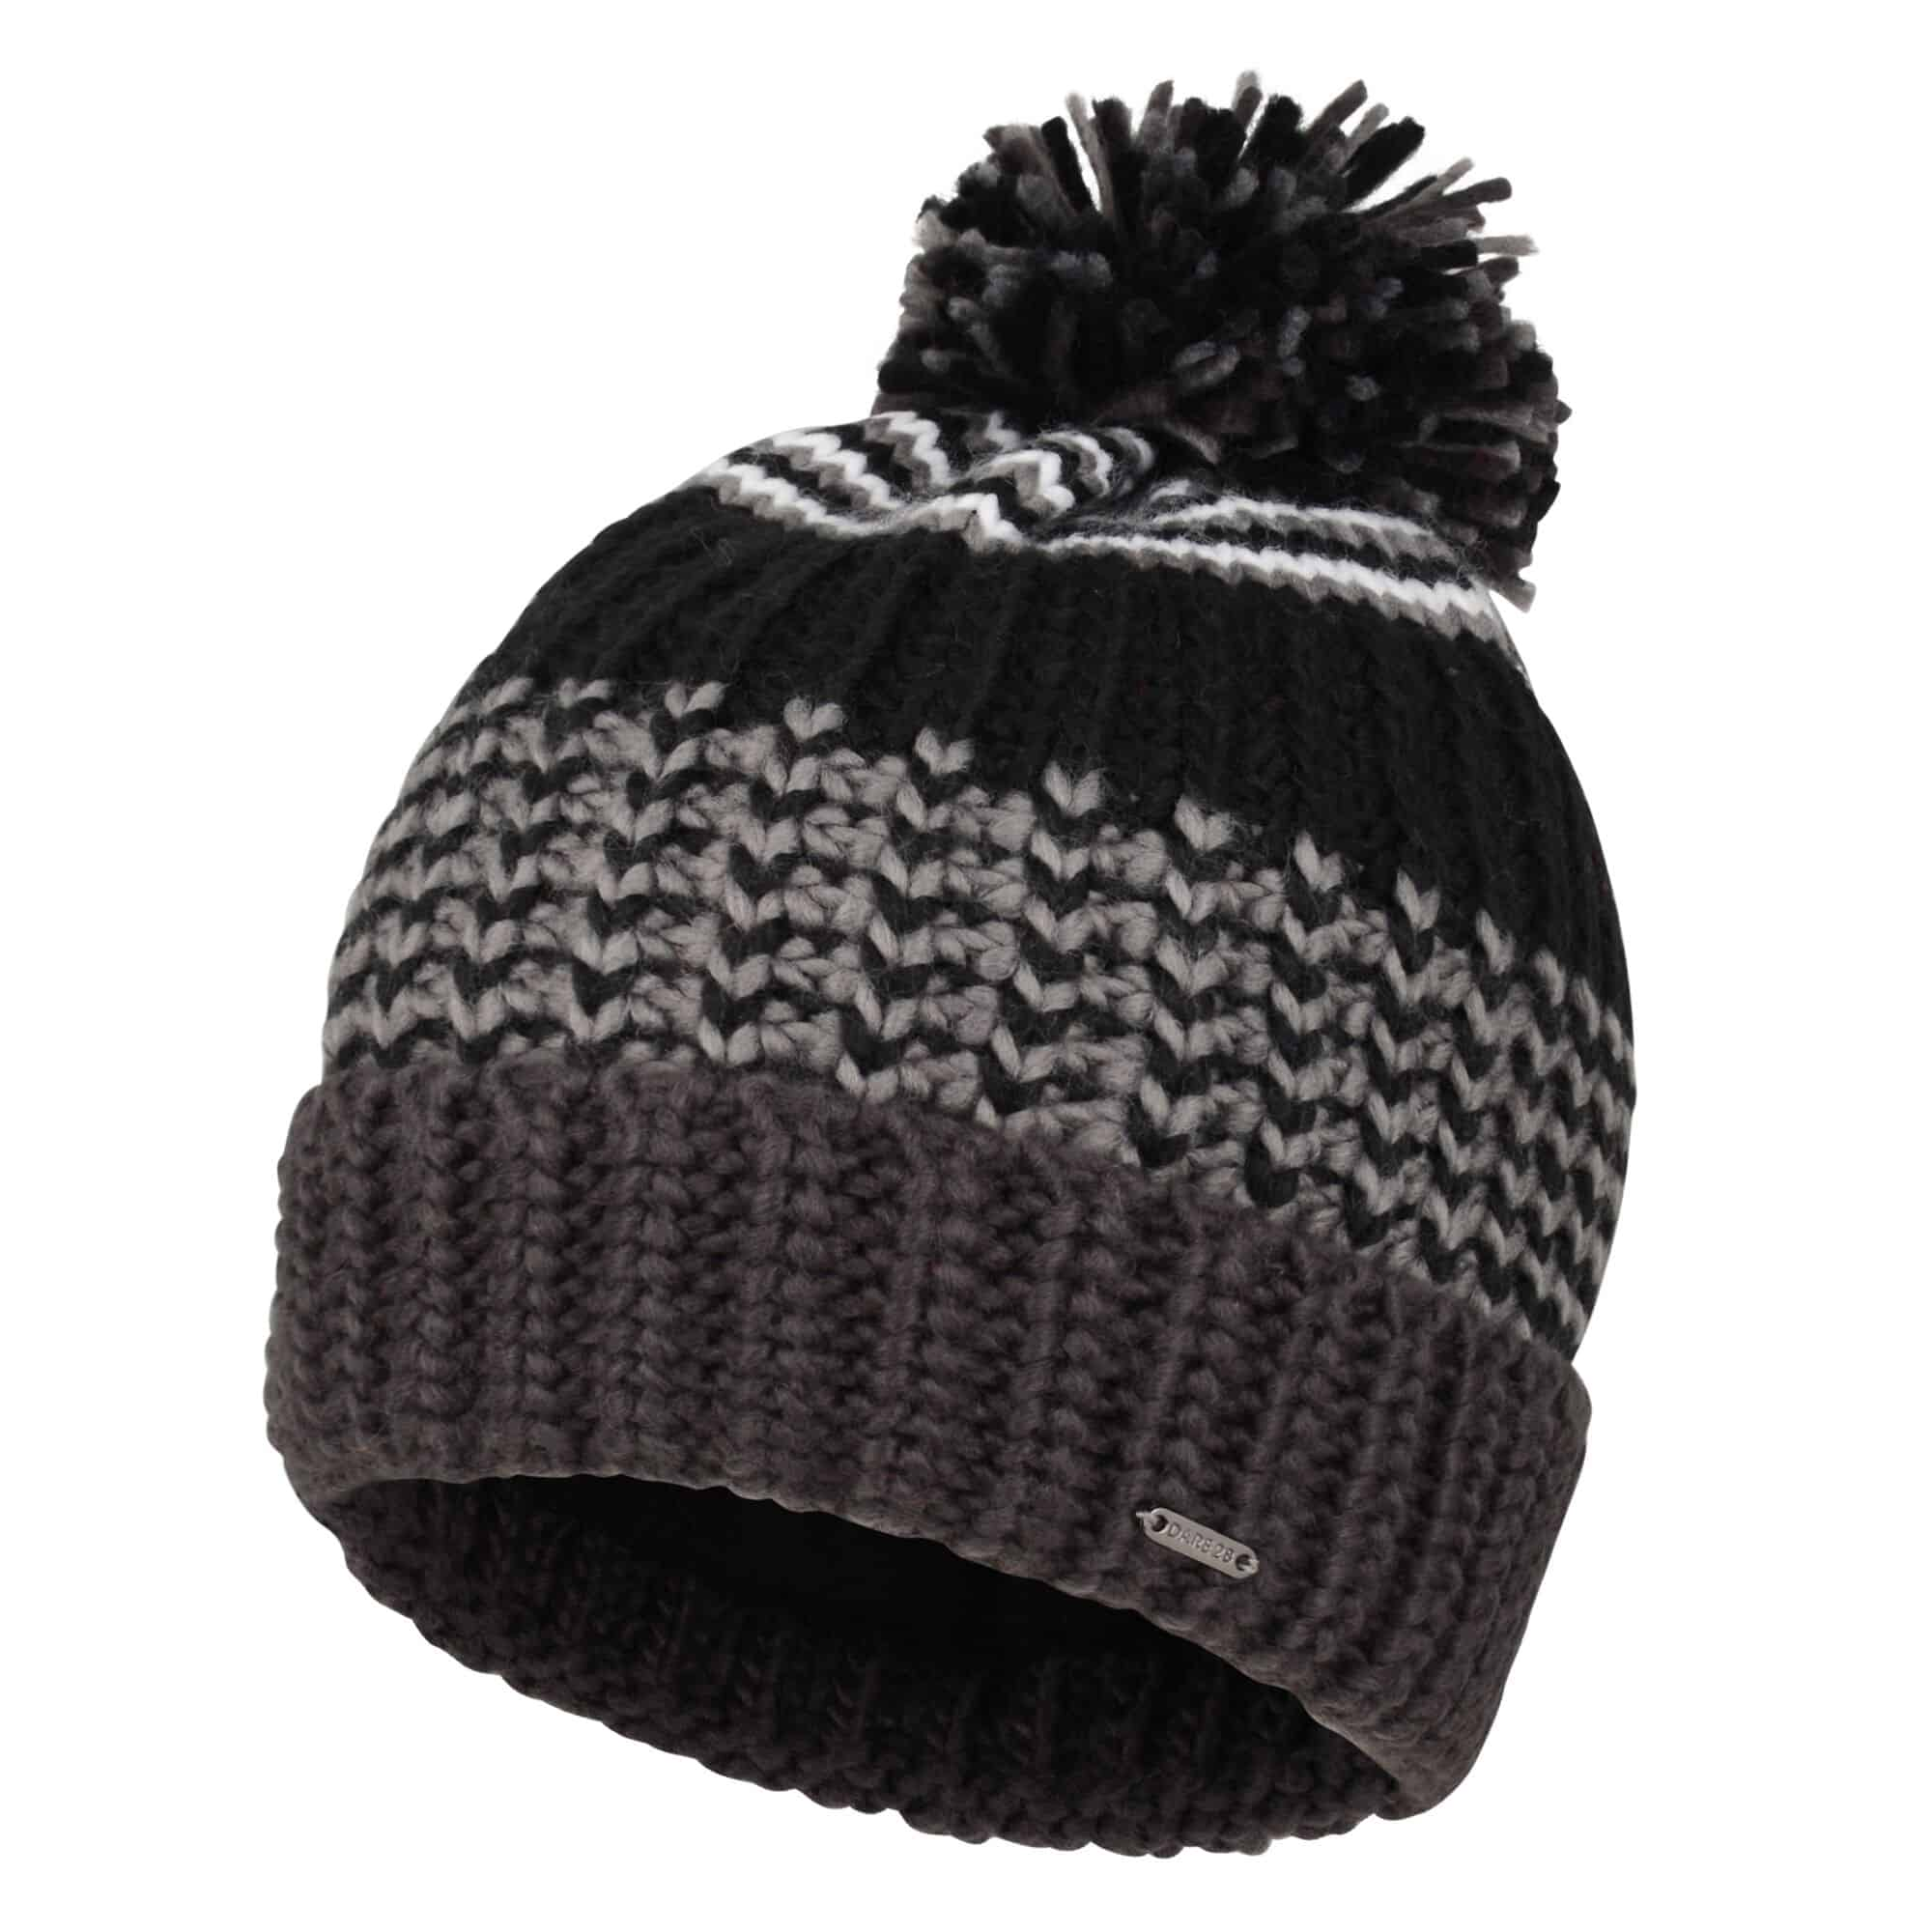 Havoc Beanie Black Ebony DMC341_06N – Copy